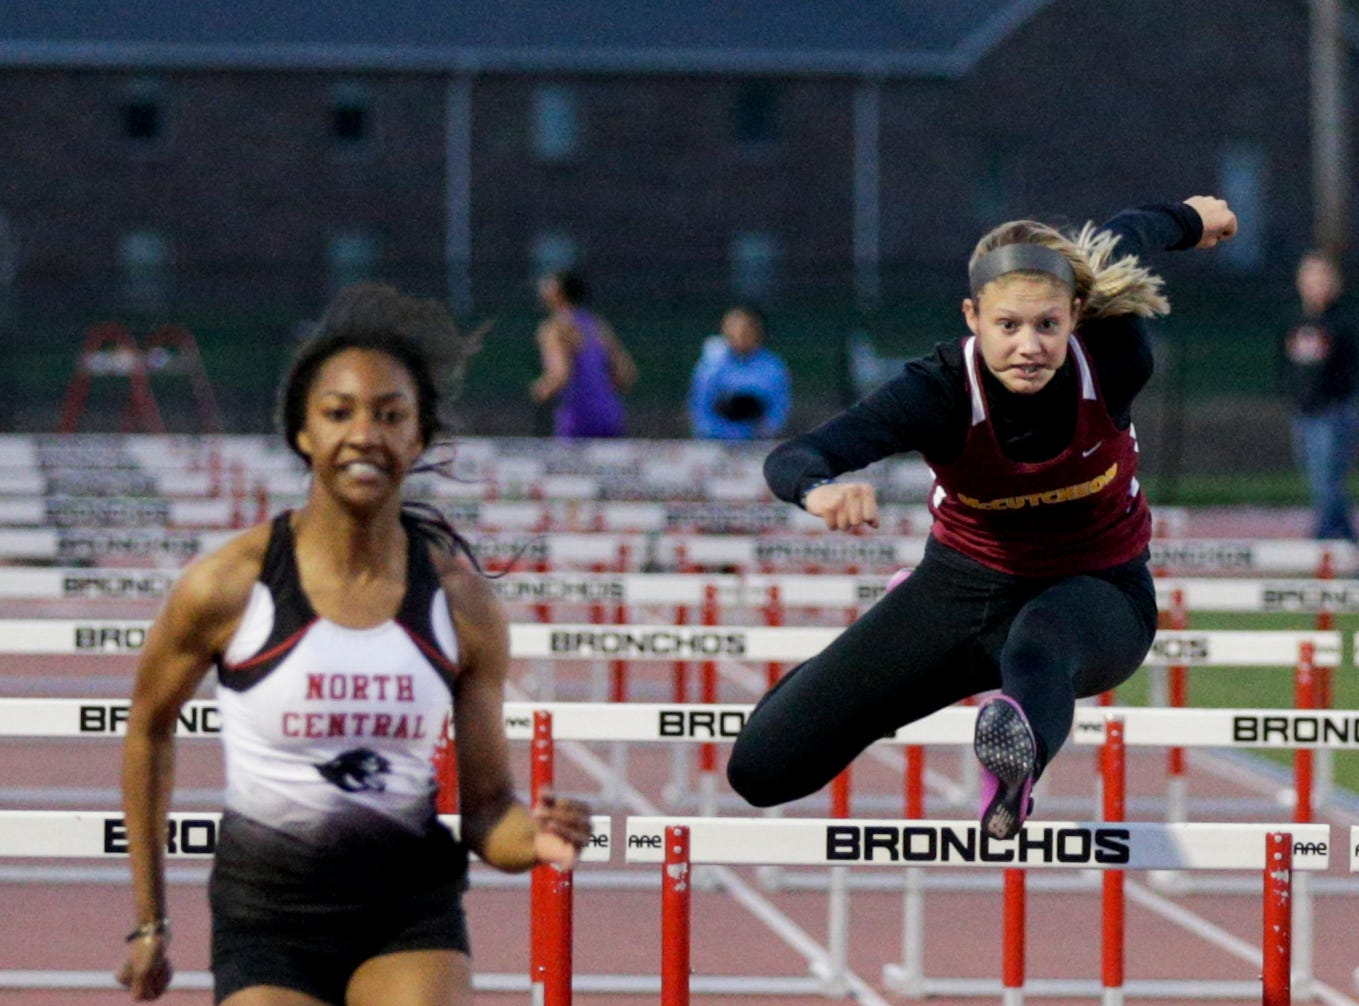 McCutcheon's Shianne Switzer competes in the women's 100 meter hurdles during the 2019 Sprinters Showcase, Friday, April 12, 2019, at Lafayette Jeff High School in Lafayette.